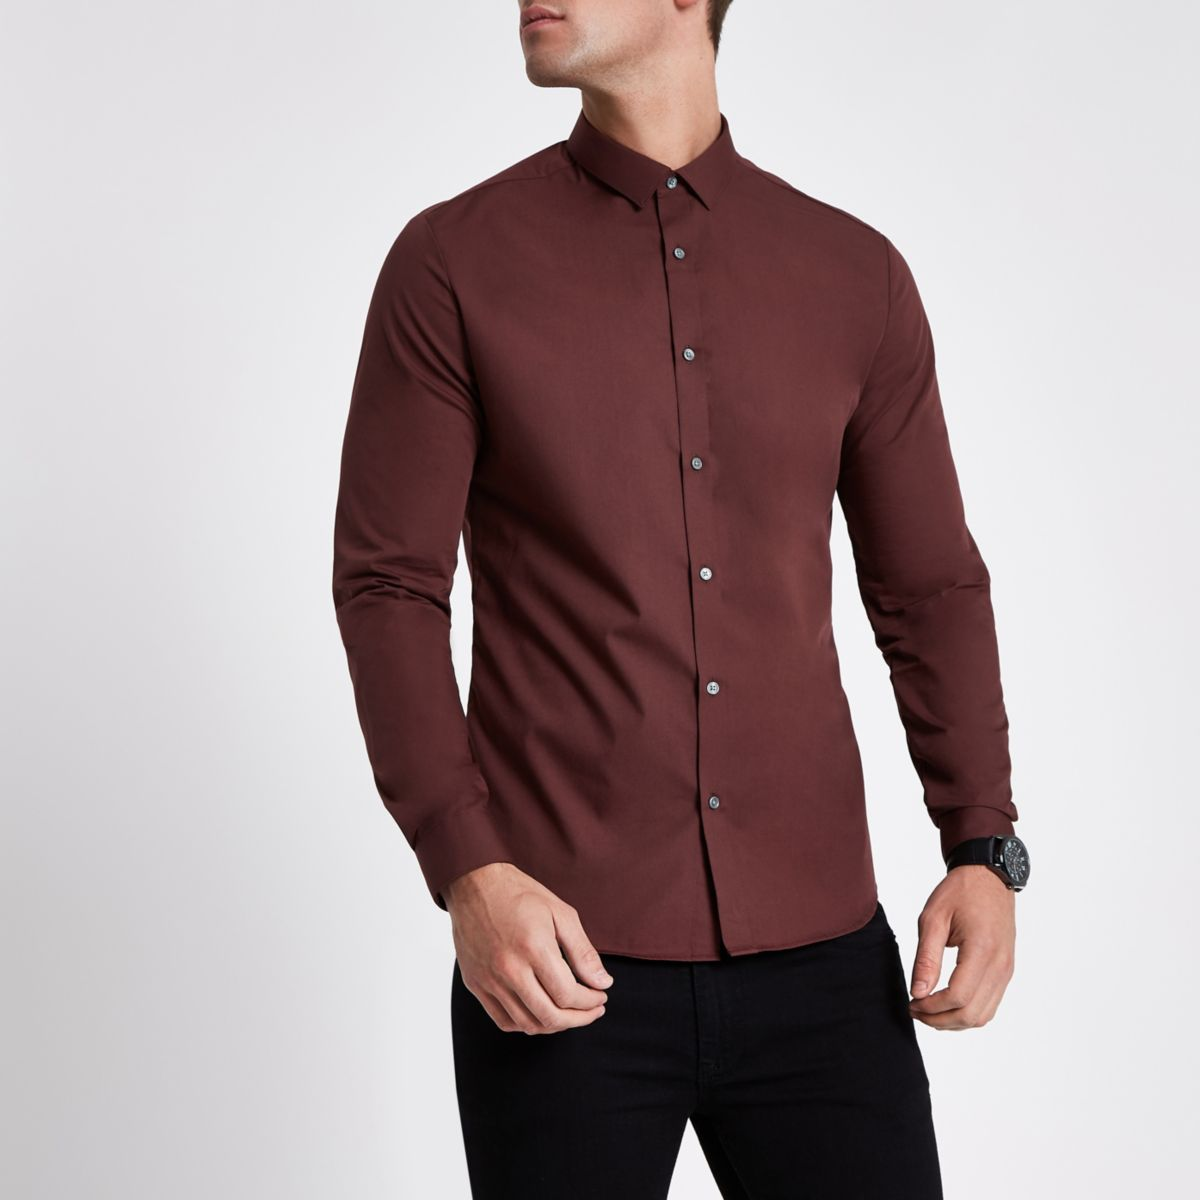 Dark brown slim fit long sleeve shirt shirts sale men for Black brown mens shirts